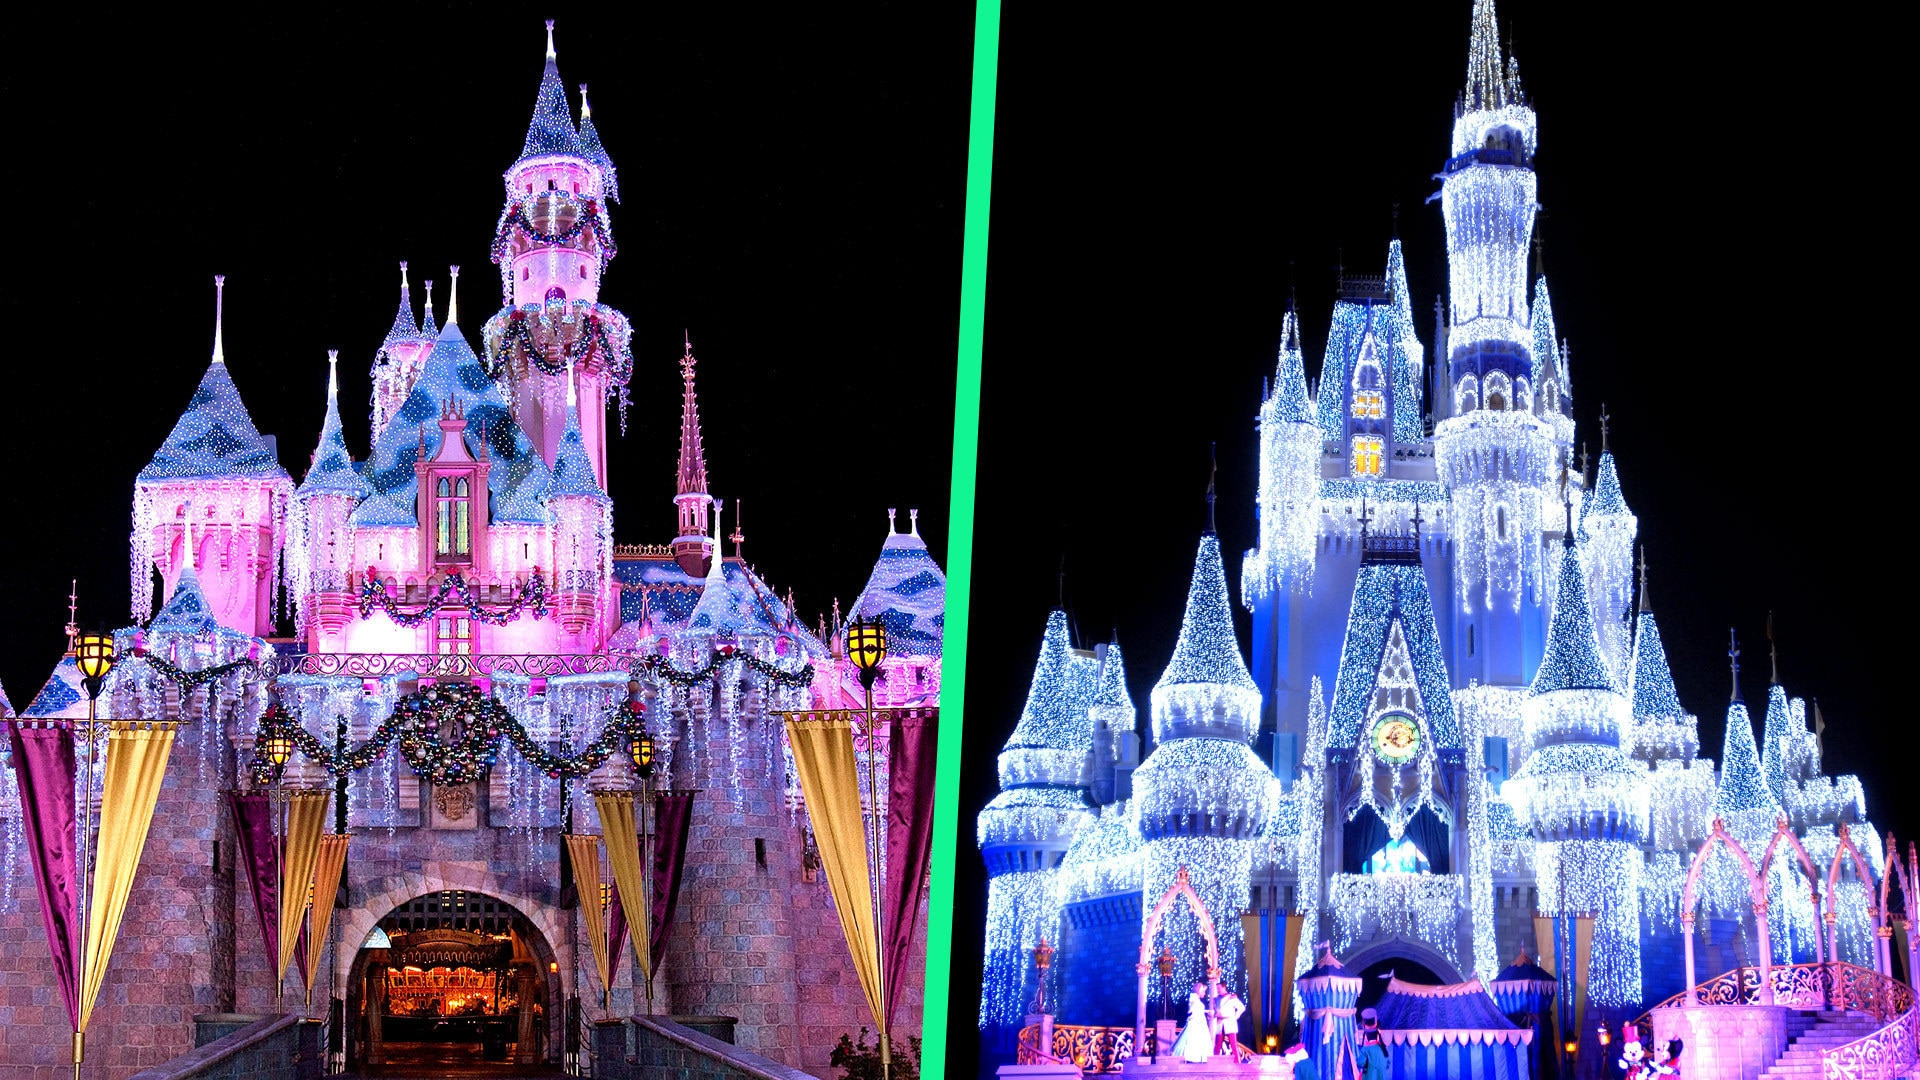 Decorating Disney Parks by the Numbers | Oh My Disney